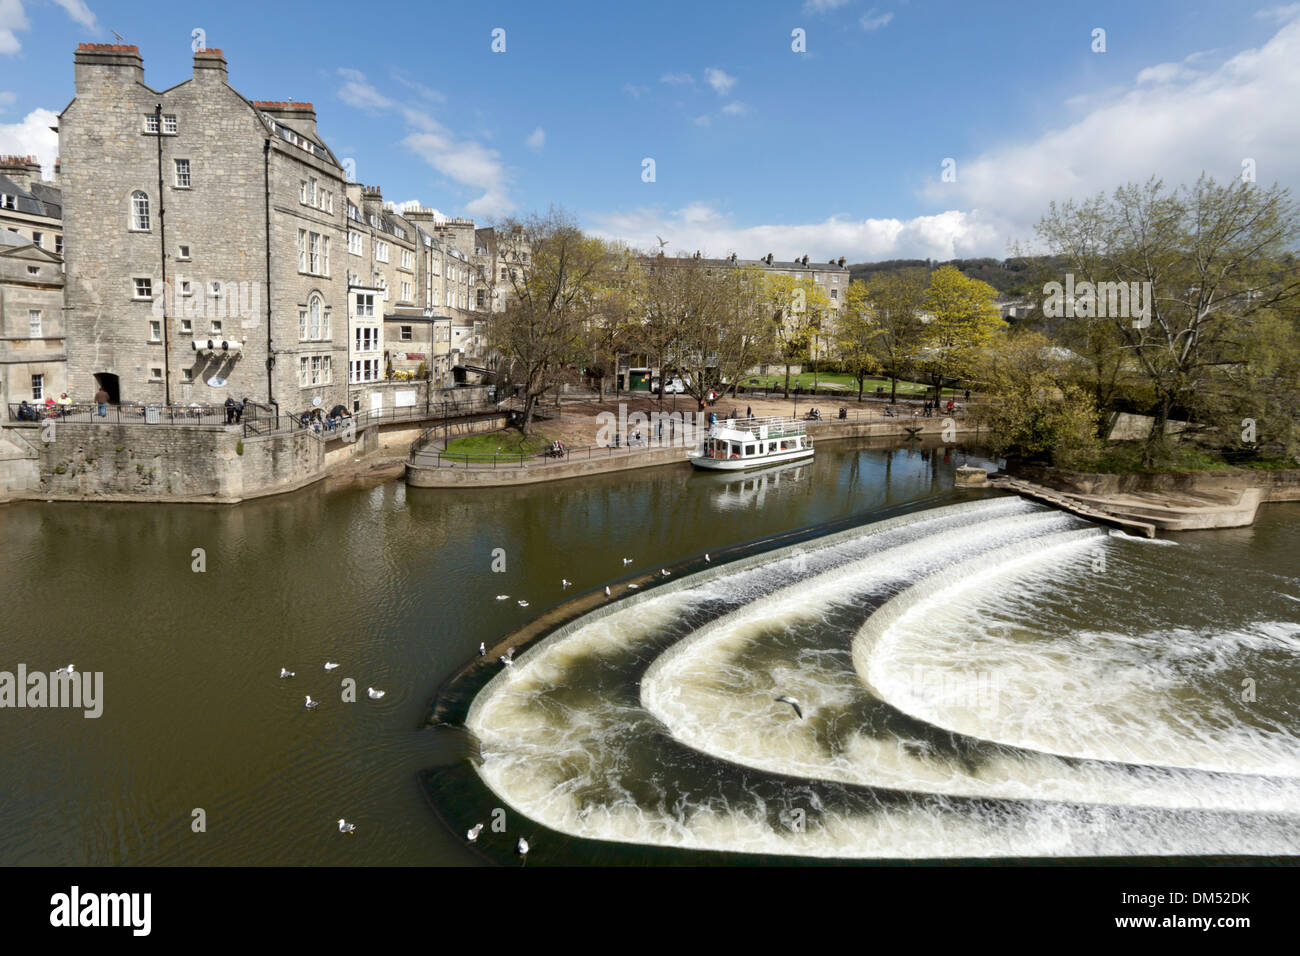 River Avon and the weir with Pulteney Bridge, by Robert Adam, Bath, Somerset, England, United Kingdom. - Stock Image